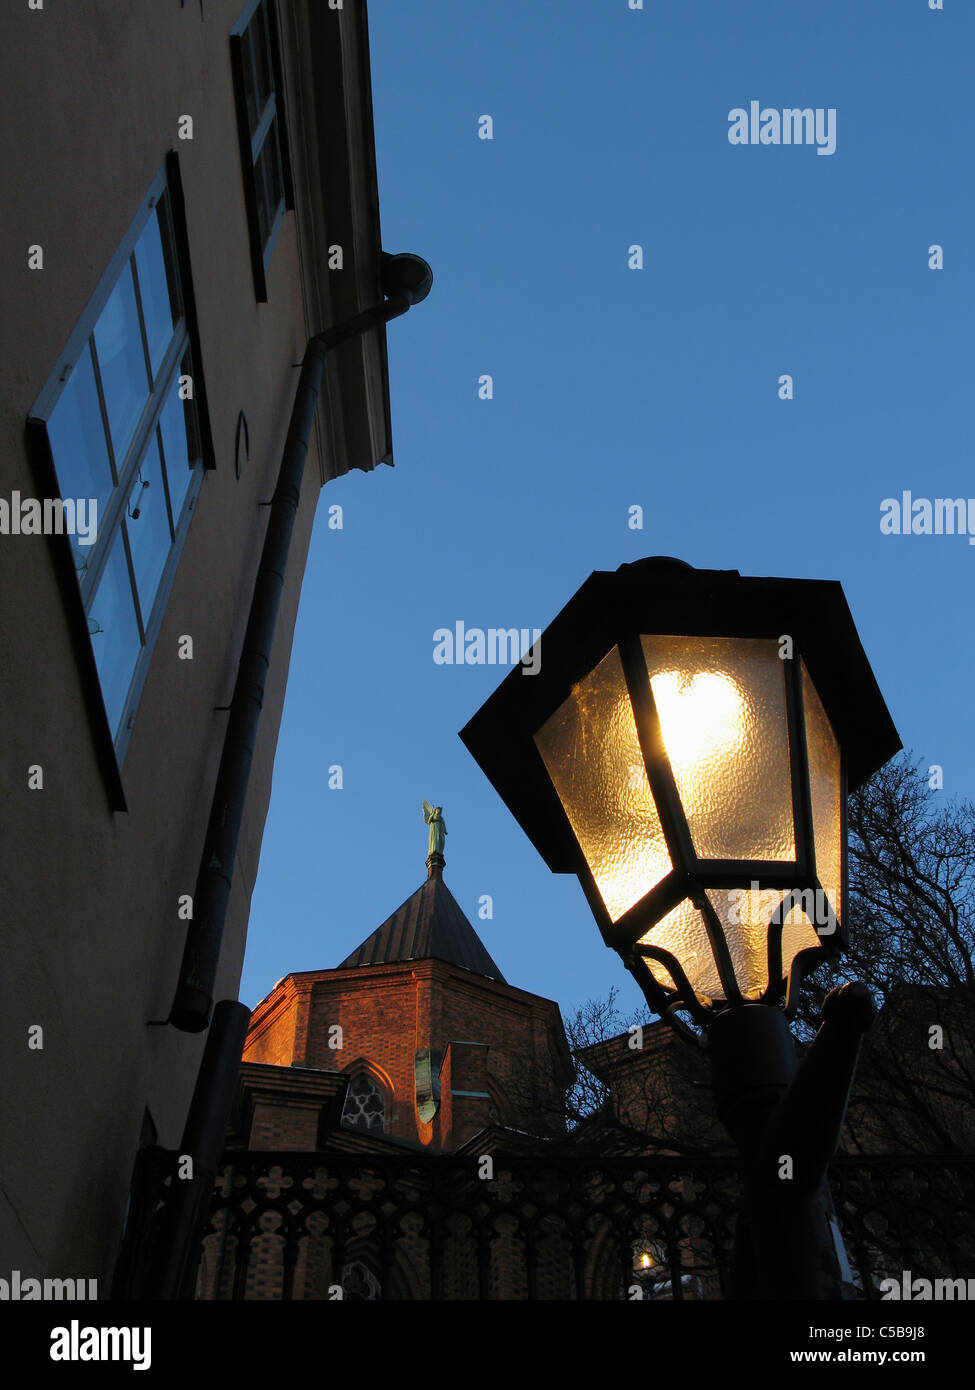 Low angle view of lit streetlight and Uppsala Cathedral against clear blue sky at night - Stock Image